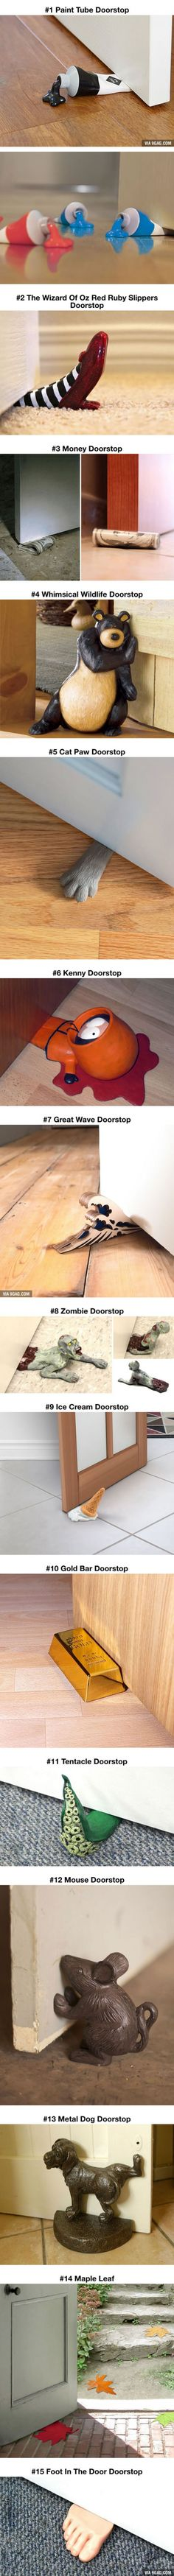 "15 Fun Doorstops. They need to add a Hodor ""Hold The Door"" stop for all of us GoT nerds out there! :)"